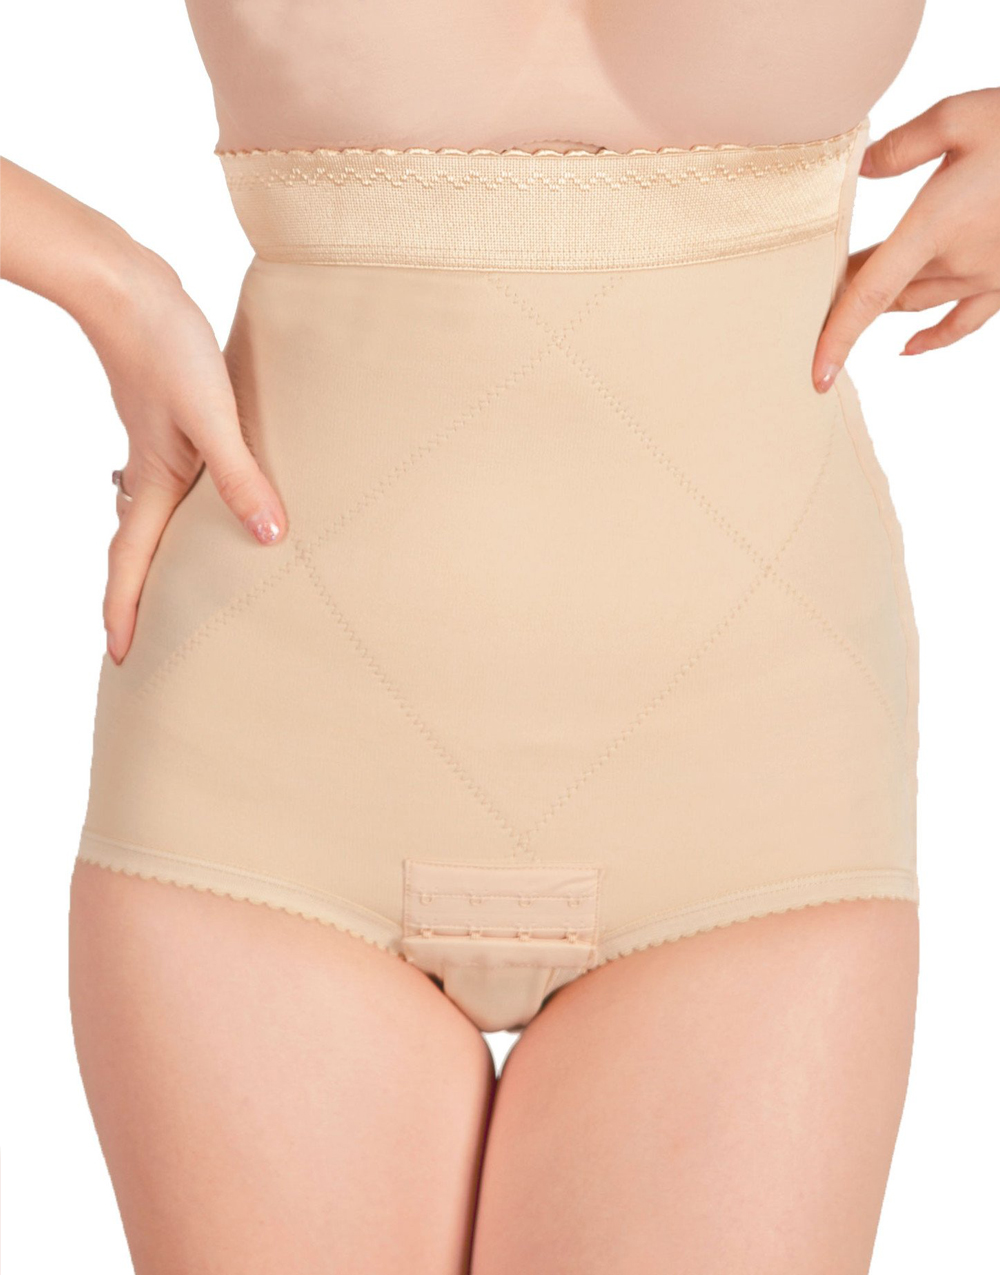 Postpartum Ultra Bikini in Nude by Wink Shapewear | XS